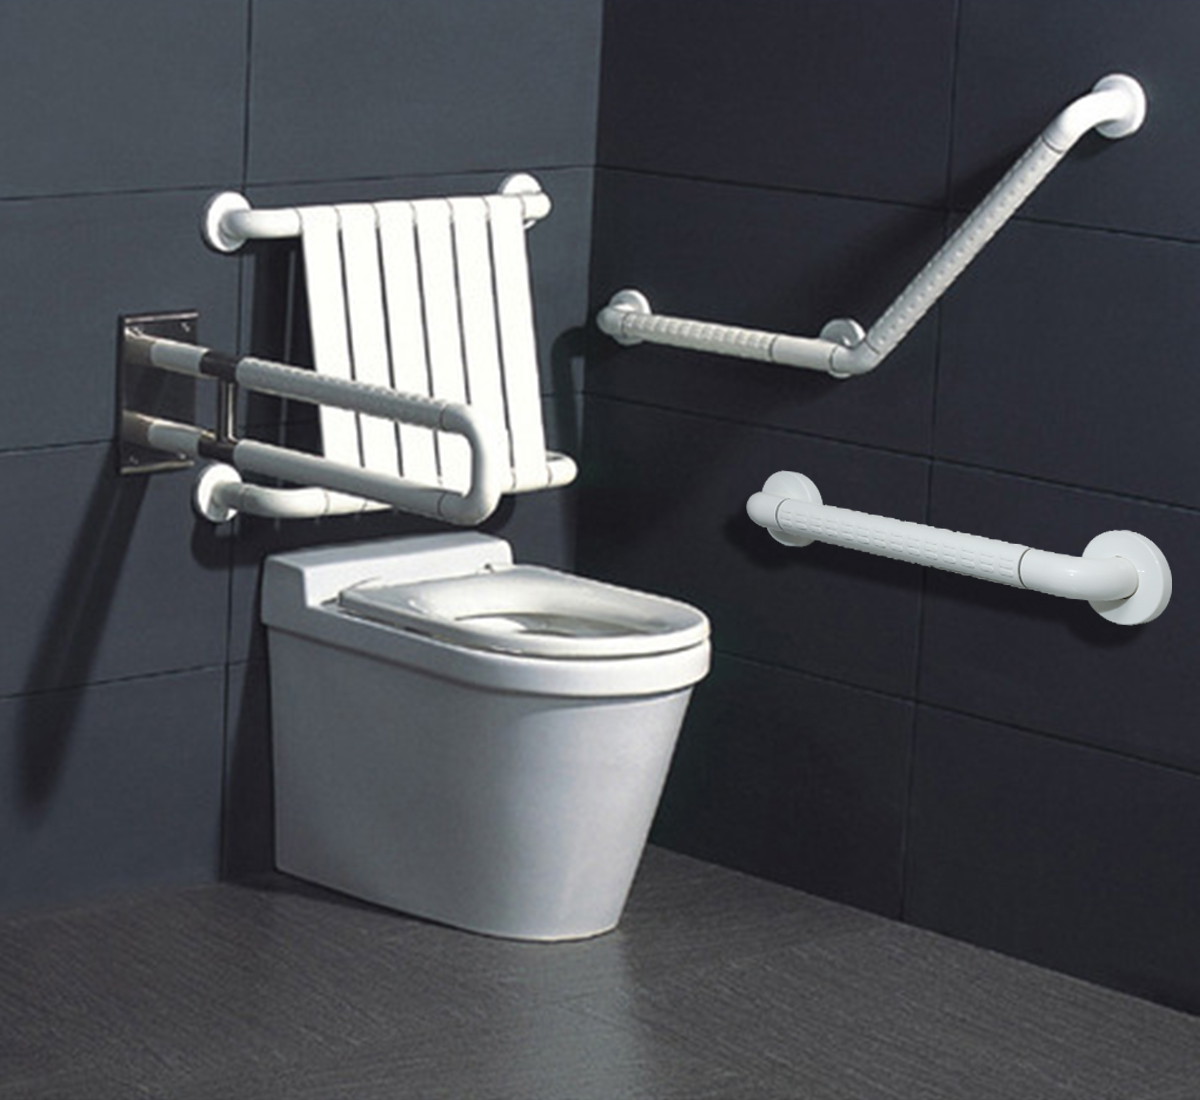 Handicap Grab Bar For Toilet 30, Grab Bars For The Bathroom Near Toilet And Shower System